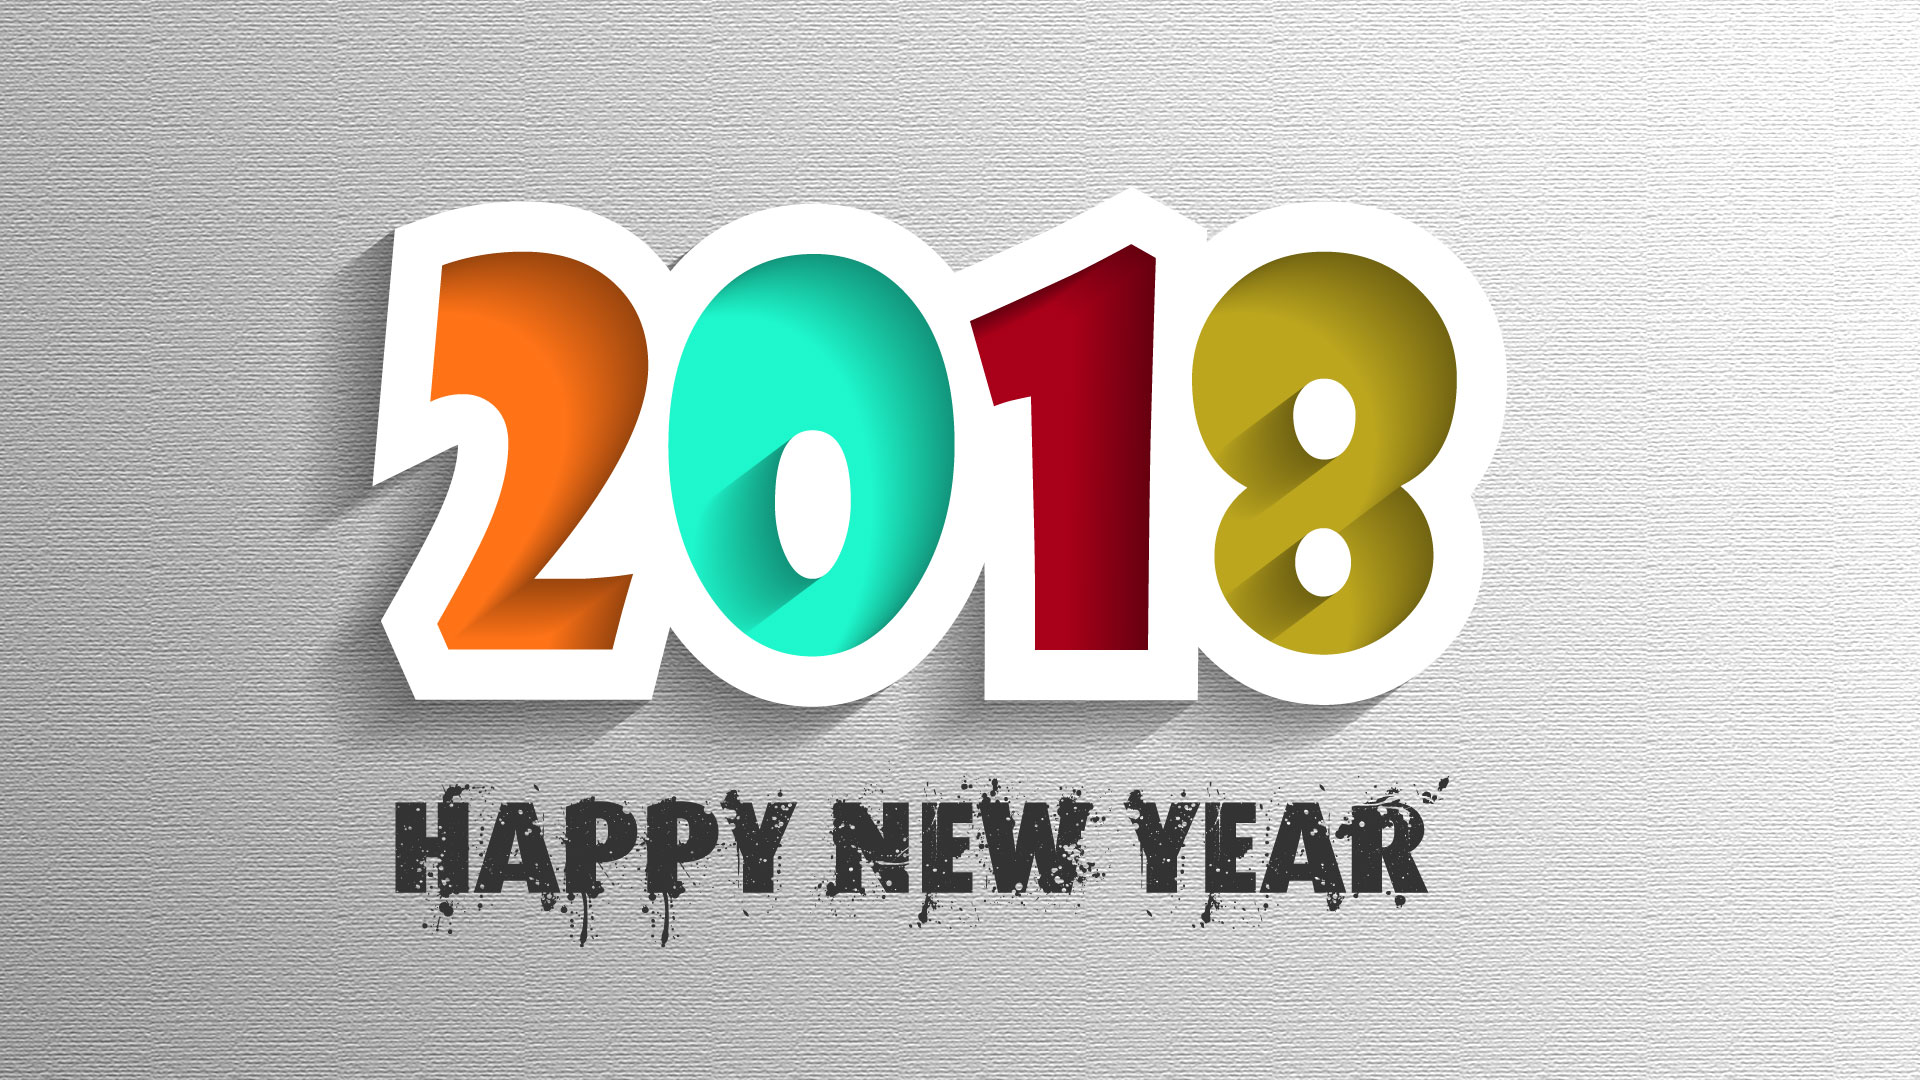 2018 happy new year desktop wallpaper 62291